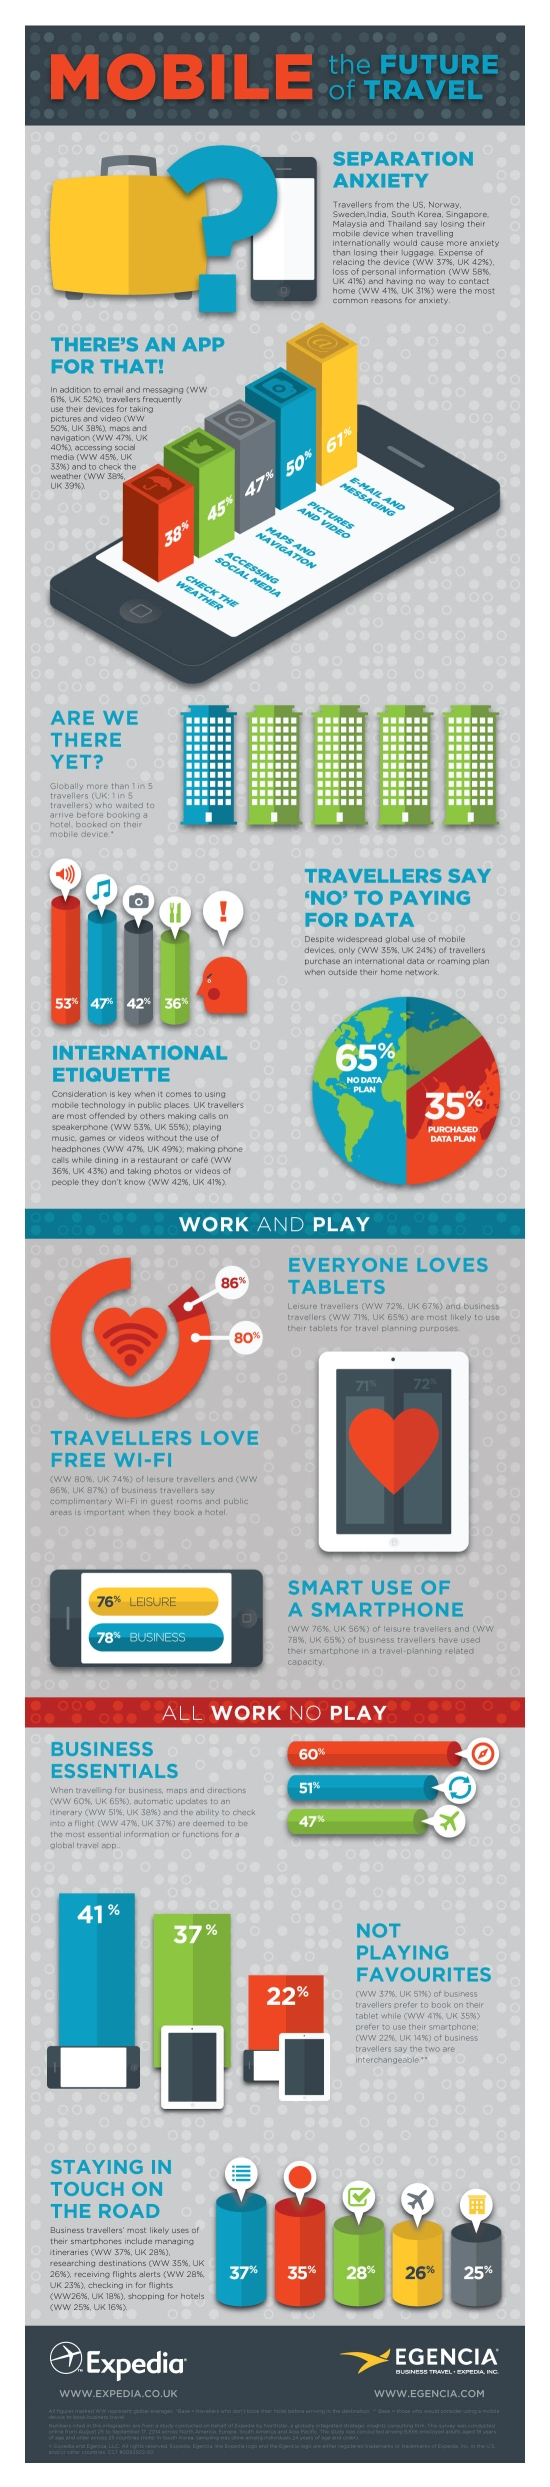 Forget the toothbrush, it's the mobile Brits can't leave home without [INFOGRAPHIC]